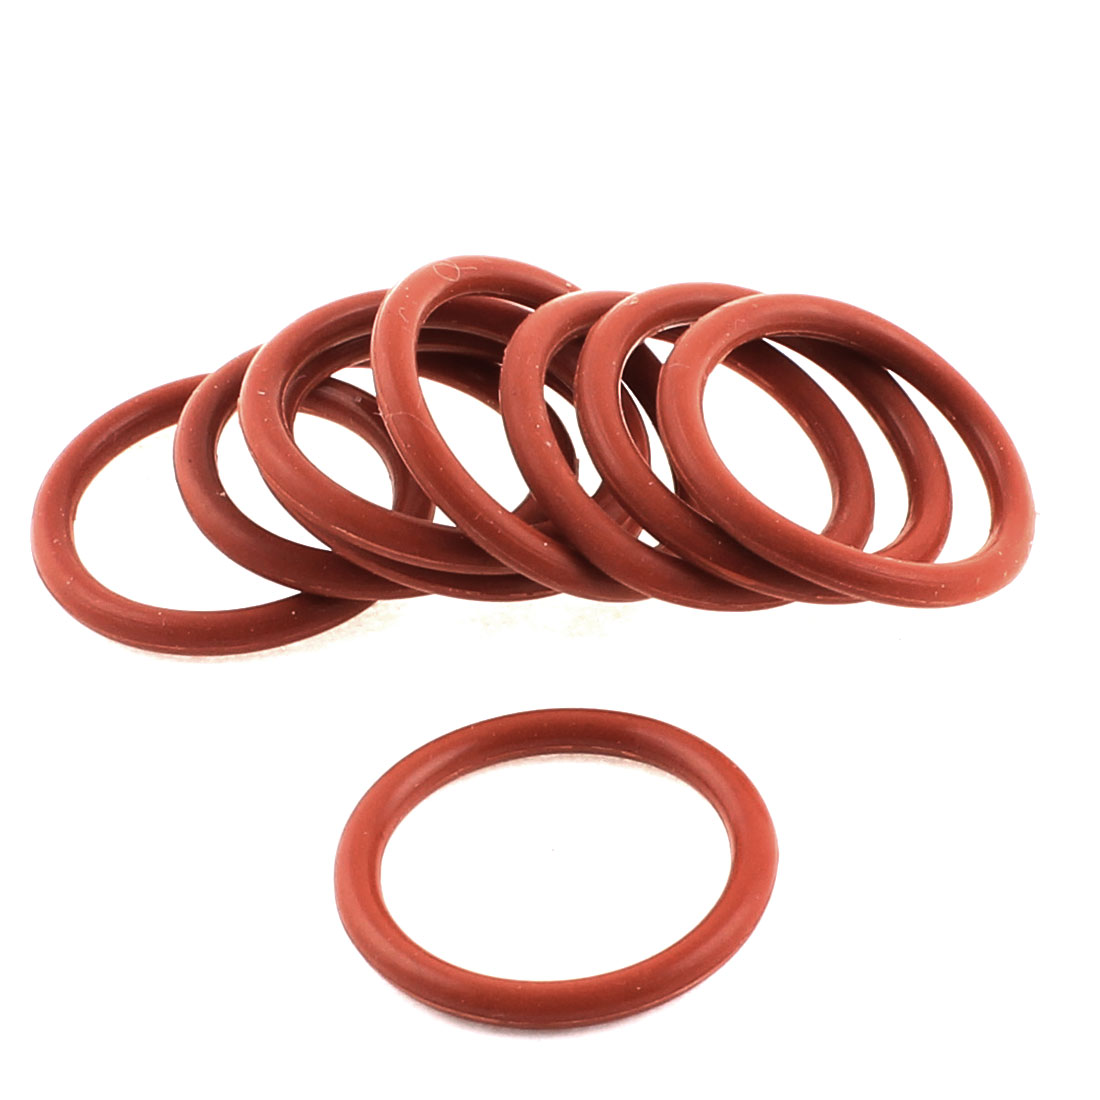 9Pcs Red Nitrile Rubber Grommets Oil Sealing Gaskets Washers O Rings 29mm x 3mm x 23mm